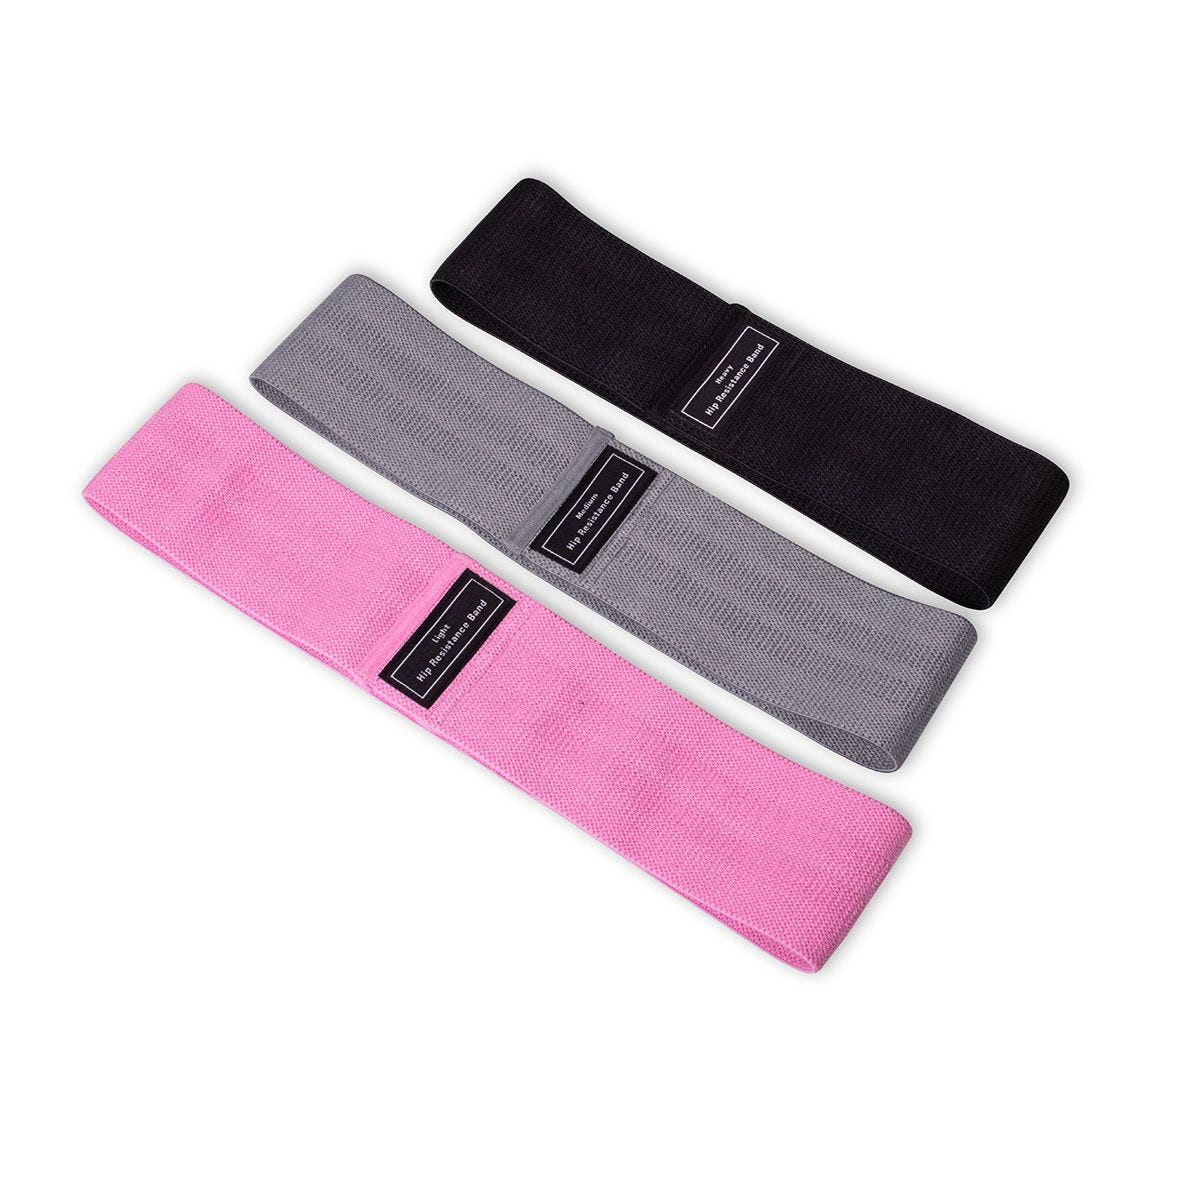 The Gym Sessions Fabric Resistance Bands -  Pack of 3